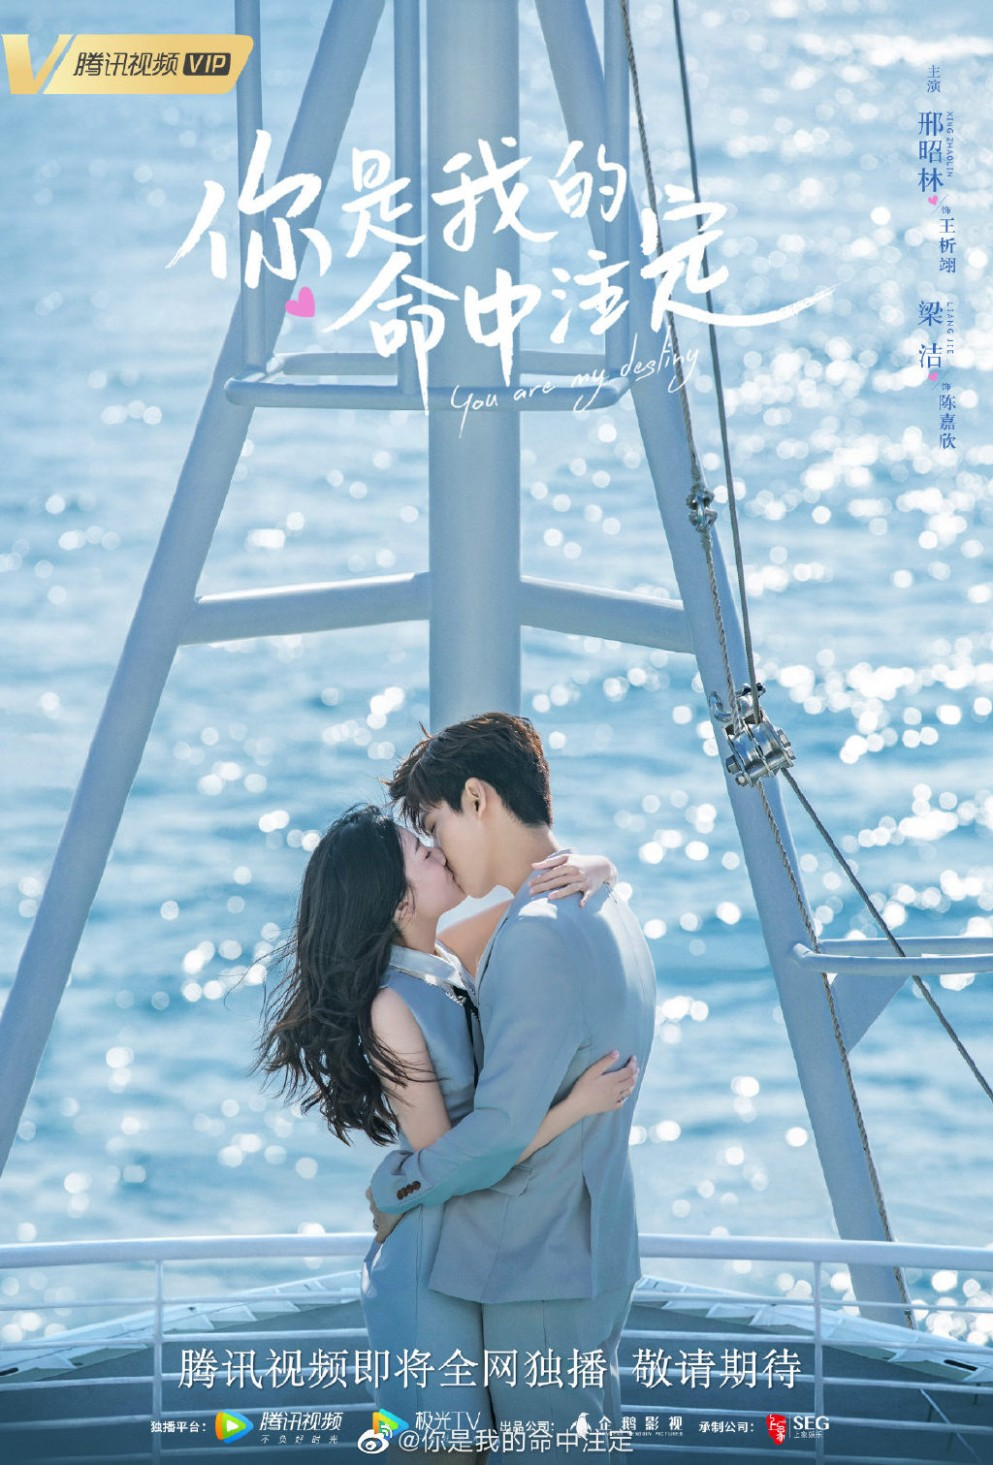 You Are My Destiny (Chinese Drama Review & Summary) ⋆ Global Granary - The Apartment Design Your Destiny Cast